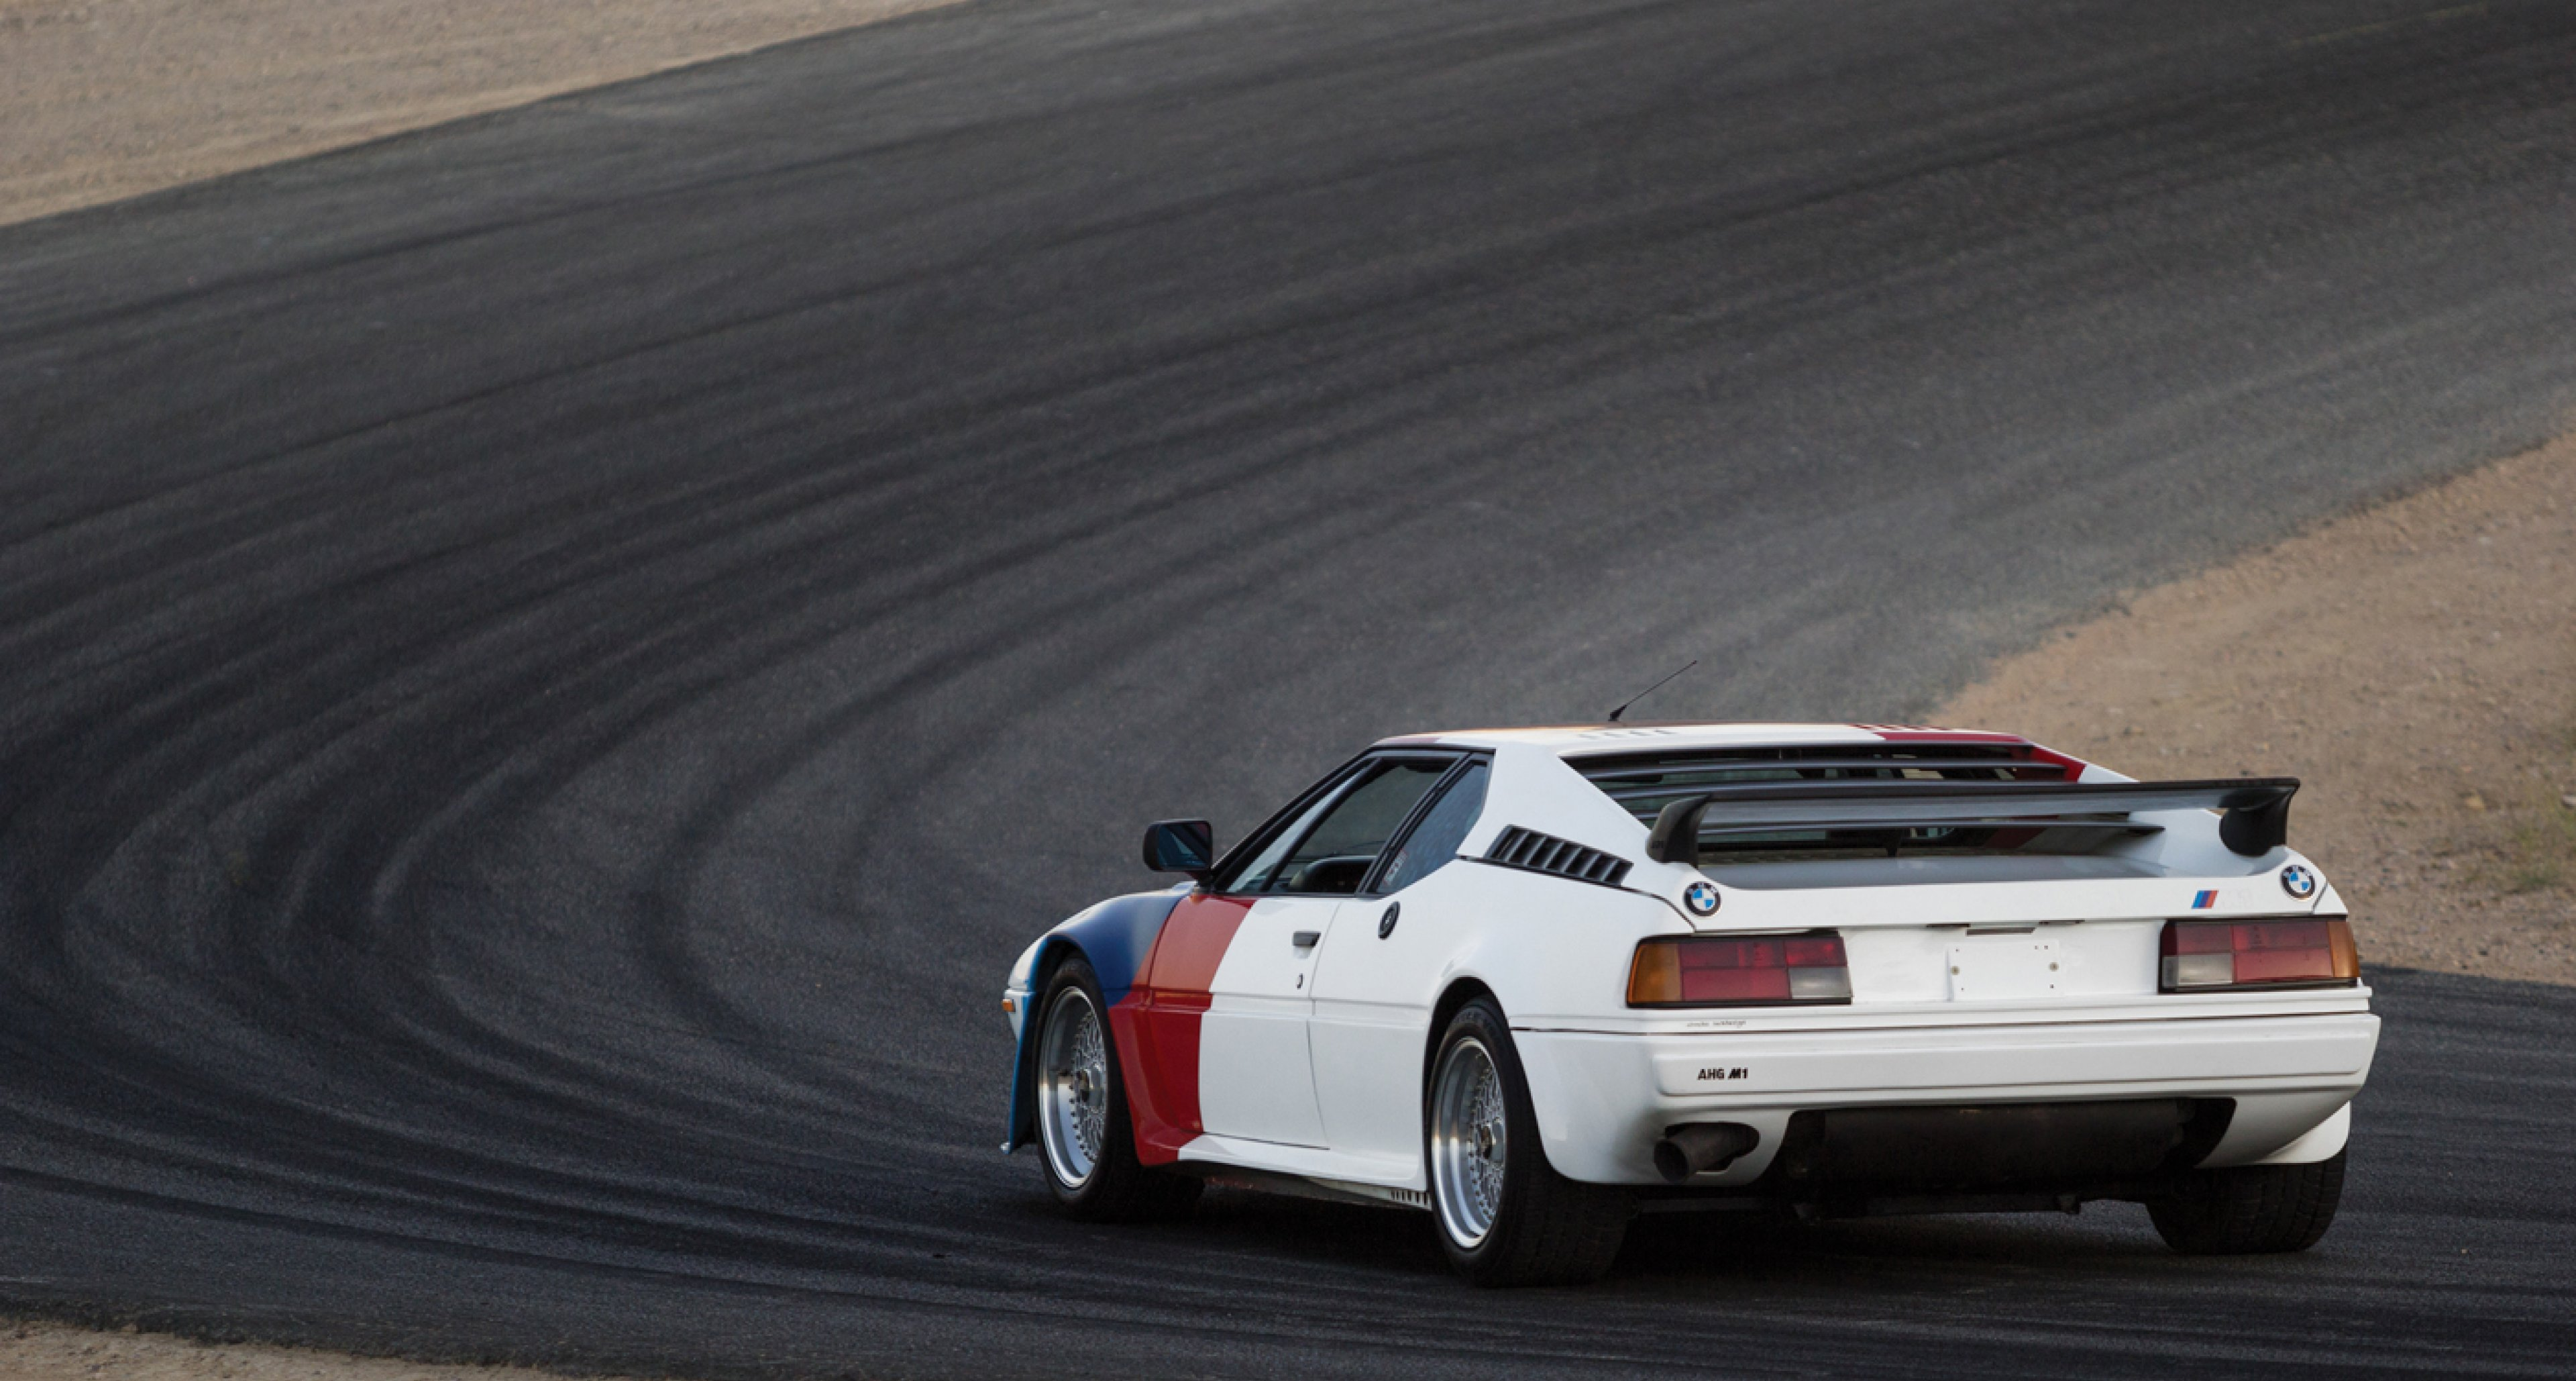 Sleeping Supercar Why The Bmw M1 Could Take The Market By